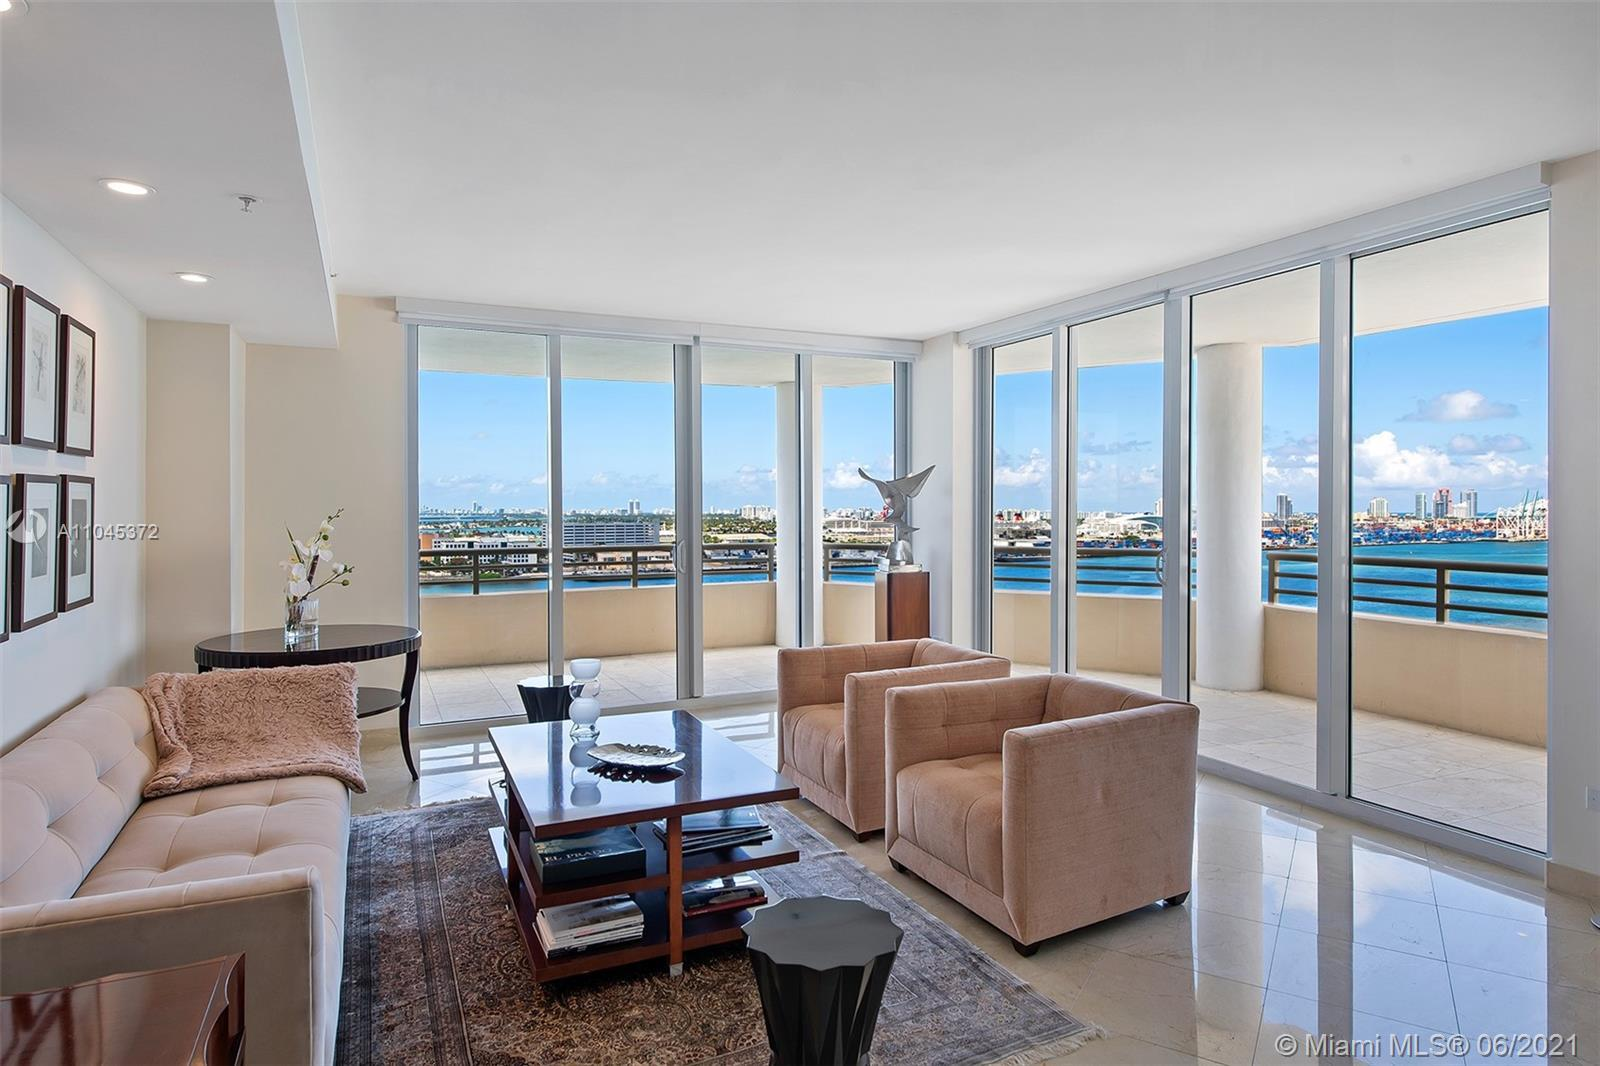 Incredible panoramic direct bay and city views from this spacious 3 bedroom, 2.5 bathroom home in th